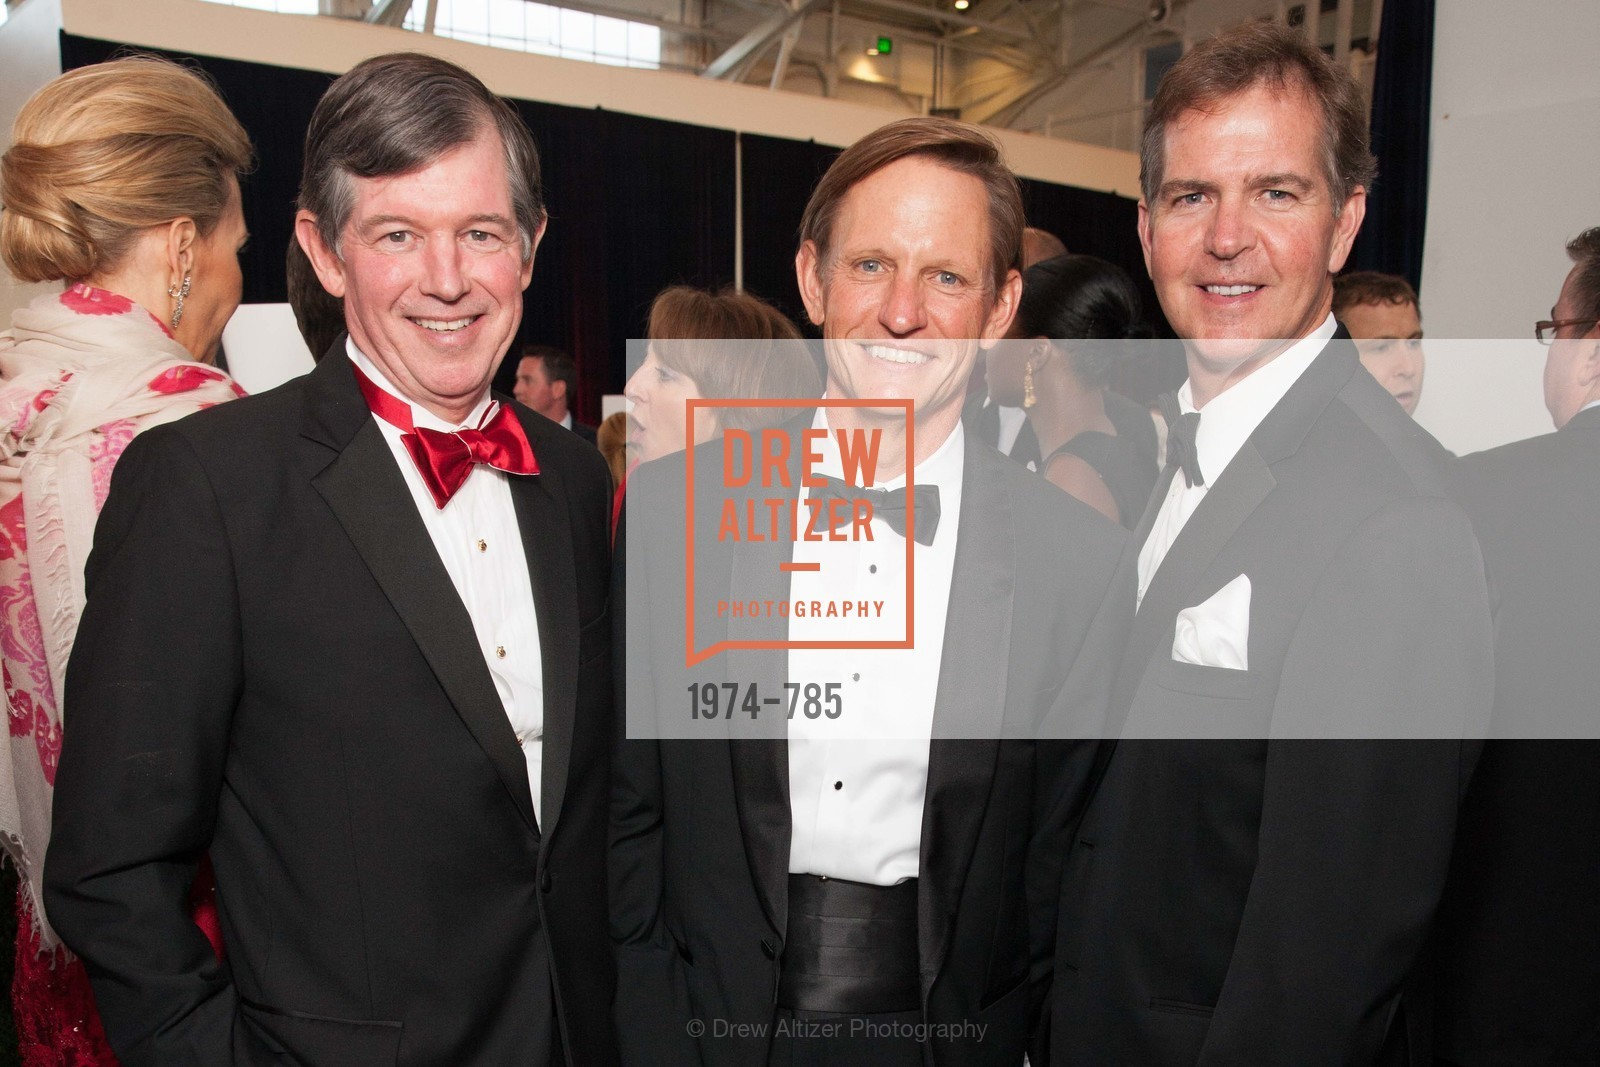 Anthony Earley, John Styslinger, Mark Miles, 2015 RED CROSS Gala, US, April 12th, 2015,Drew Altizer, Drew Altizer Photography, full-service agency, private events, San Francisco photographer, photographer california